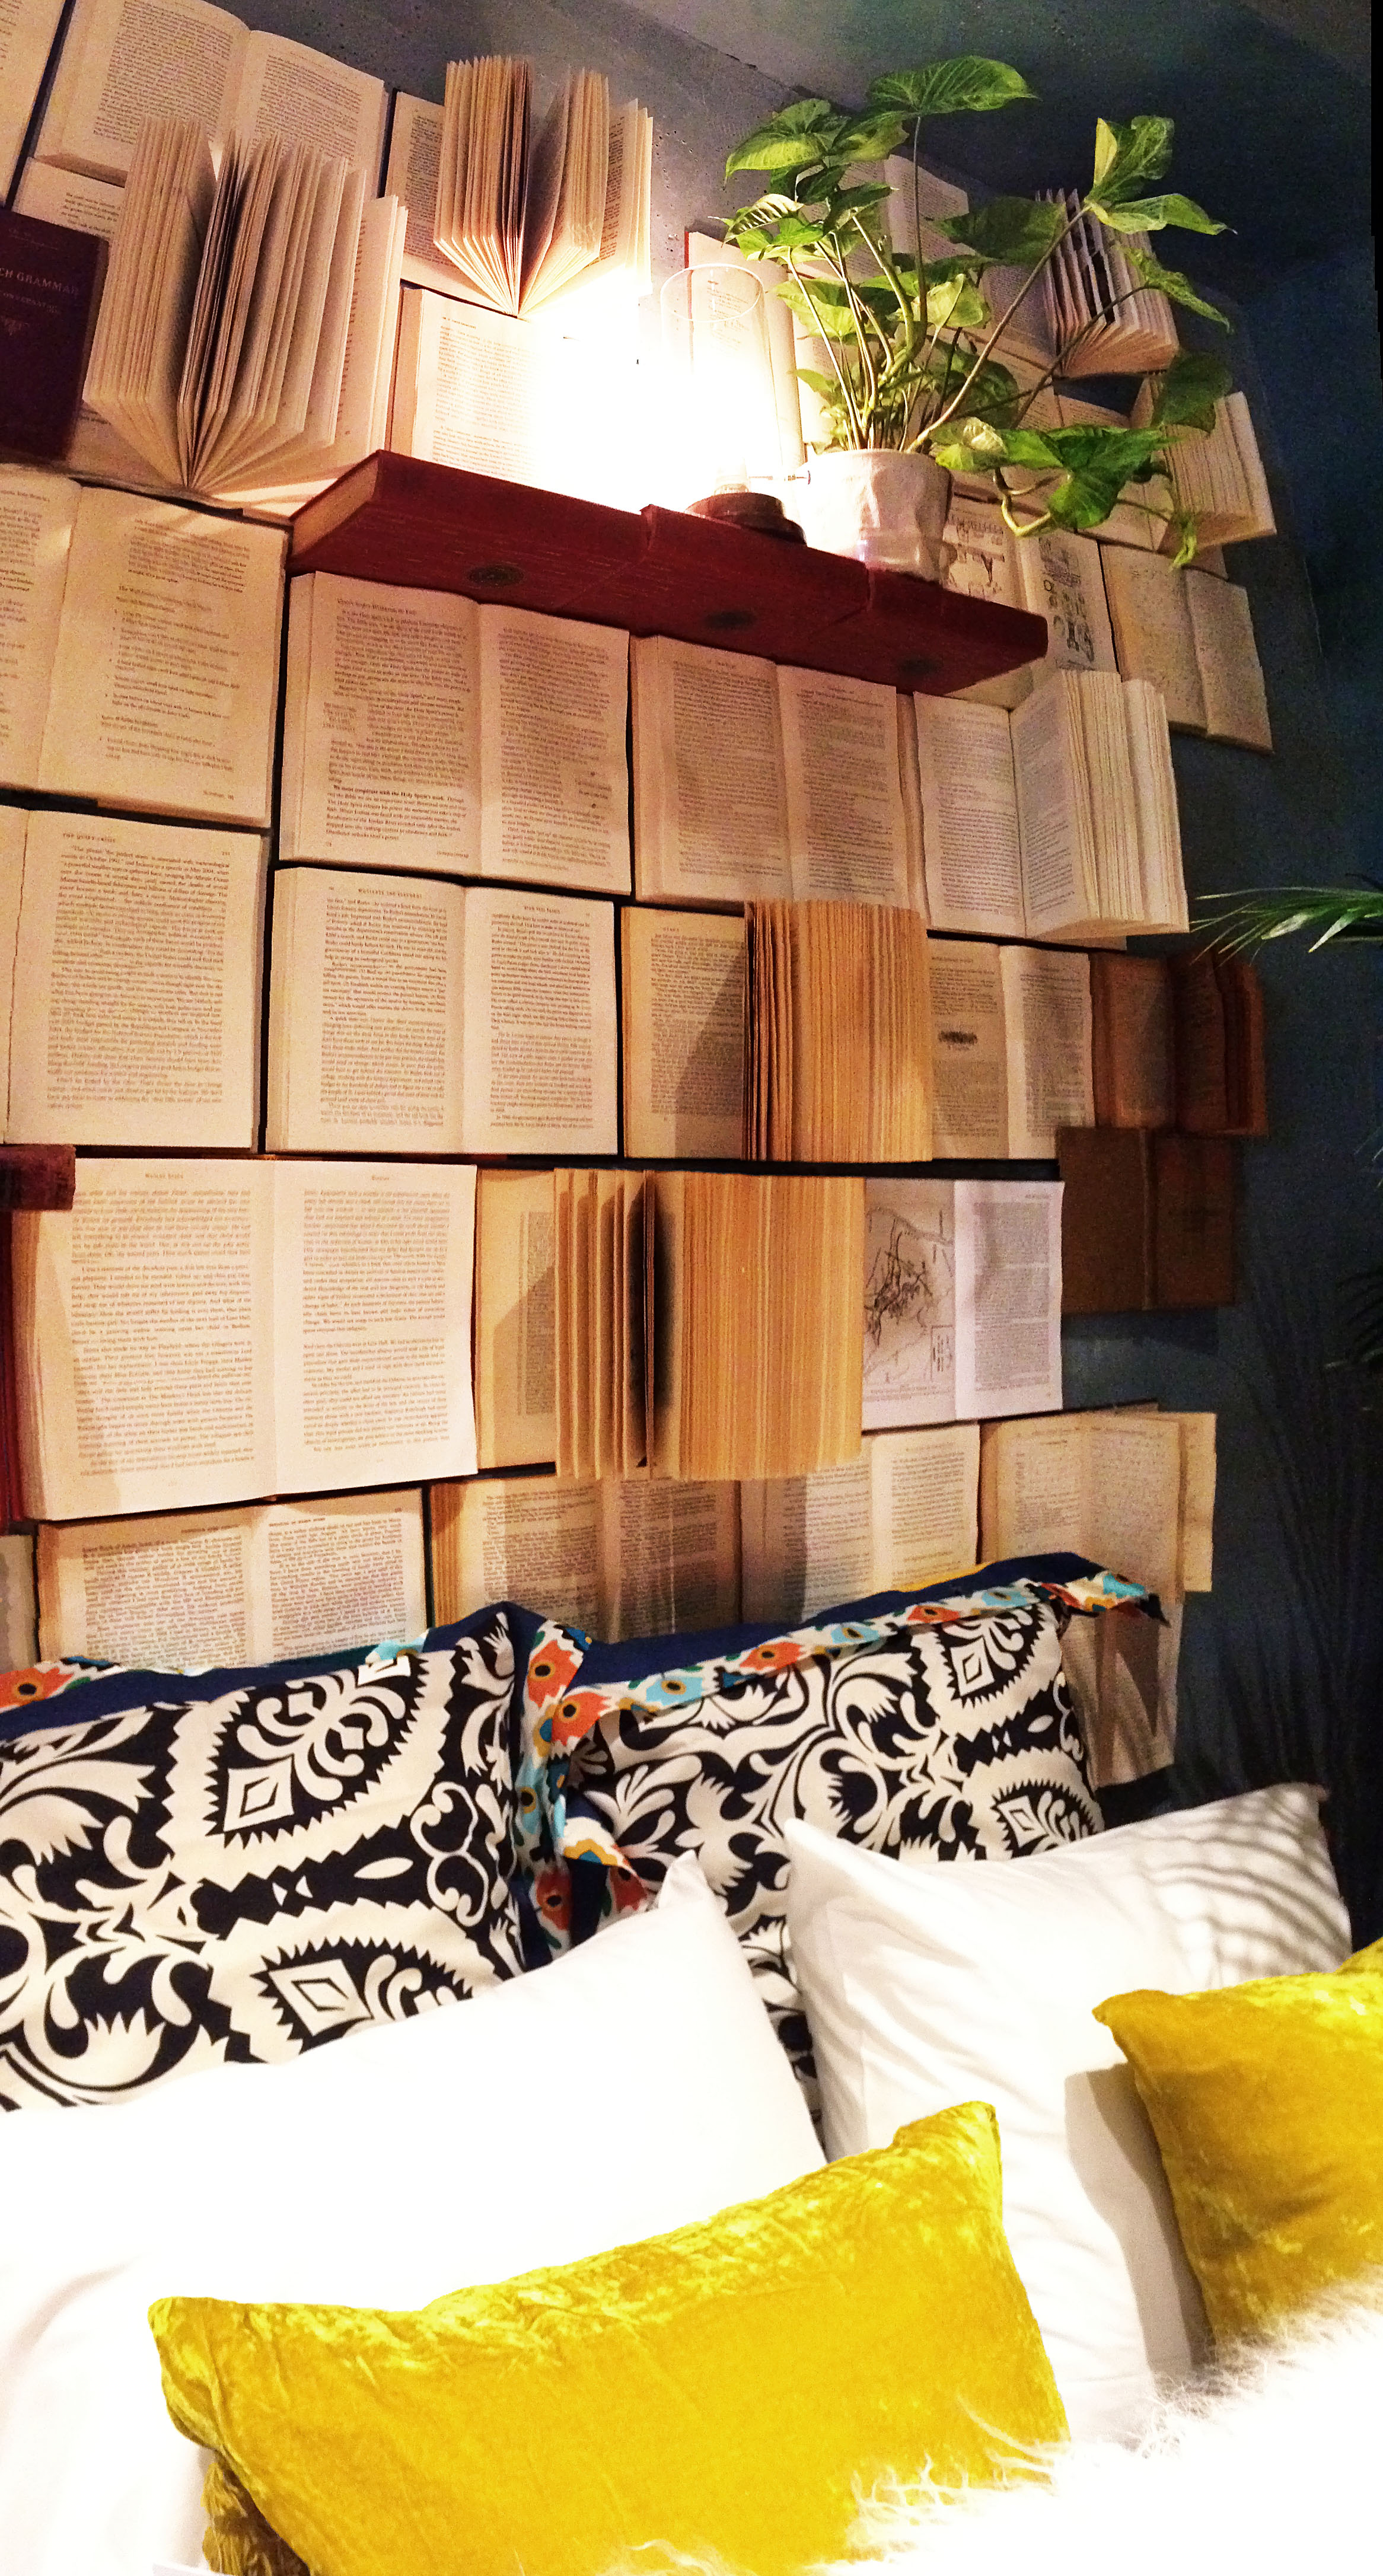 book-wall-juvenilehalldesign.com-blog.jpg